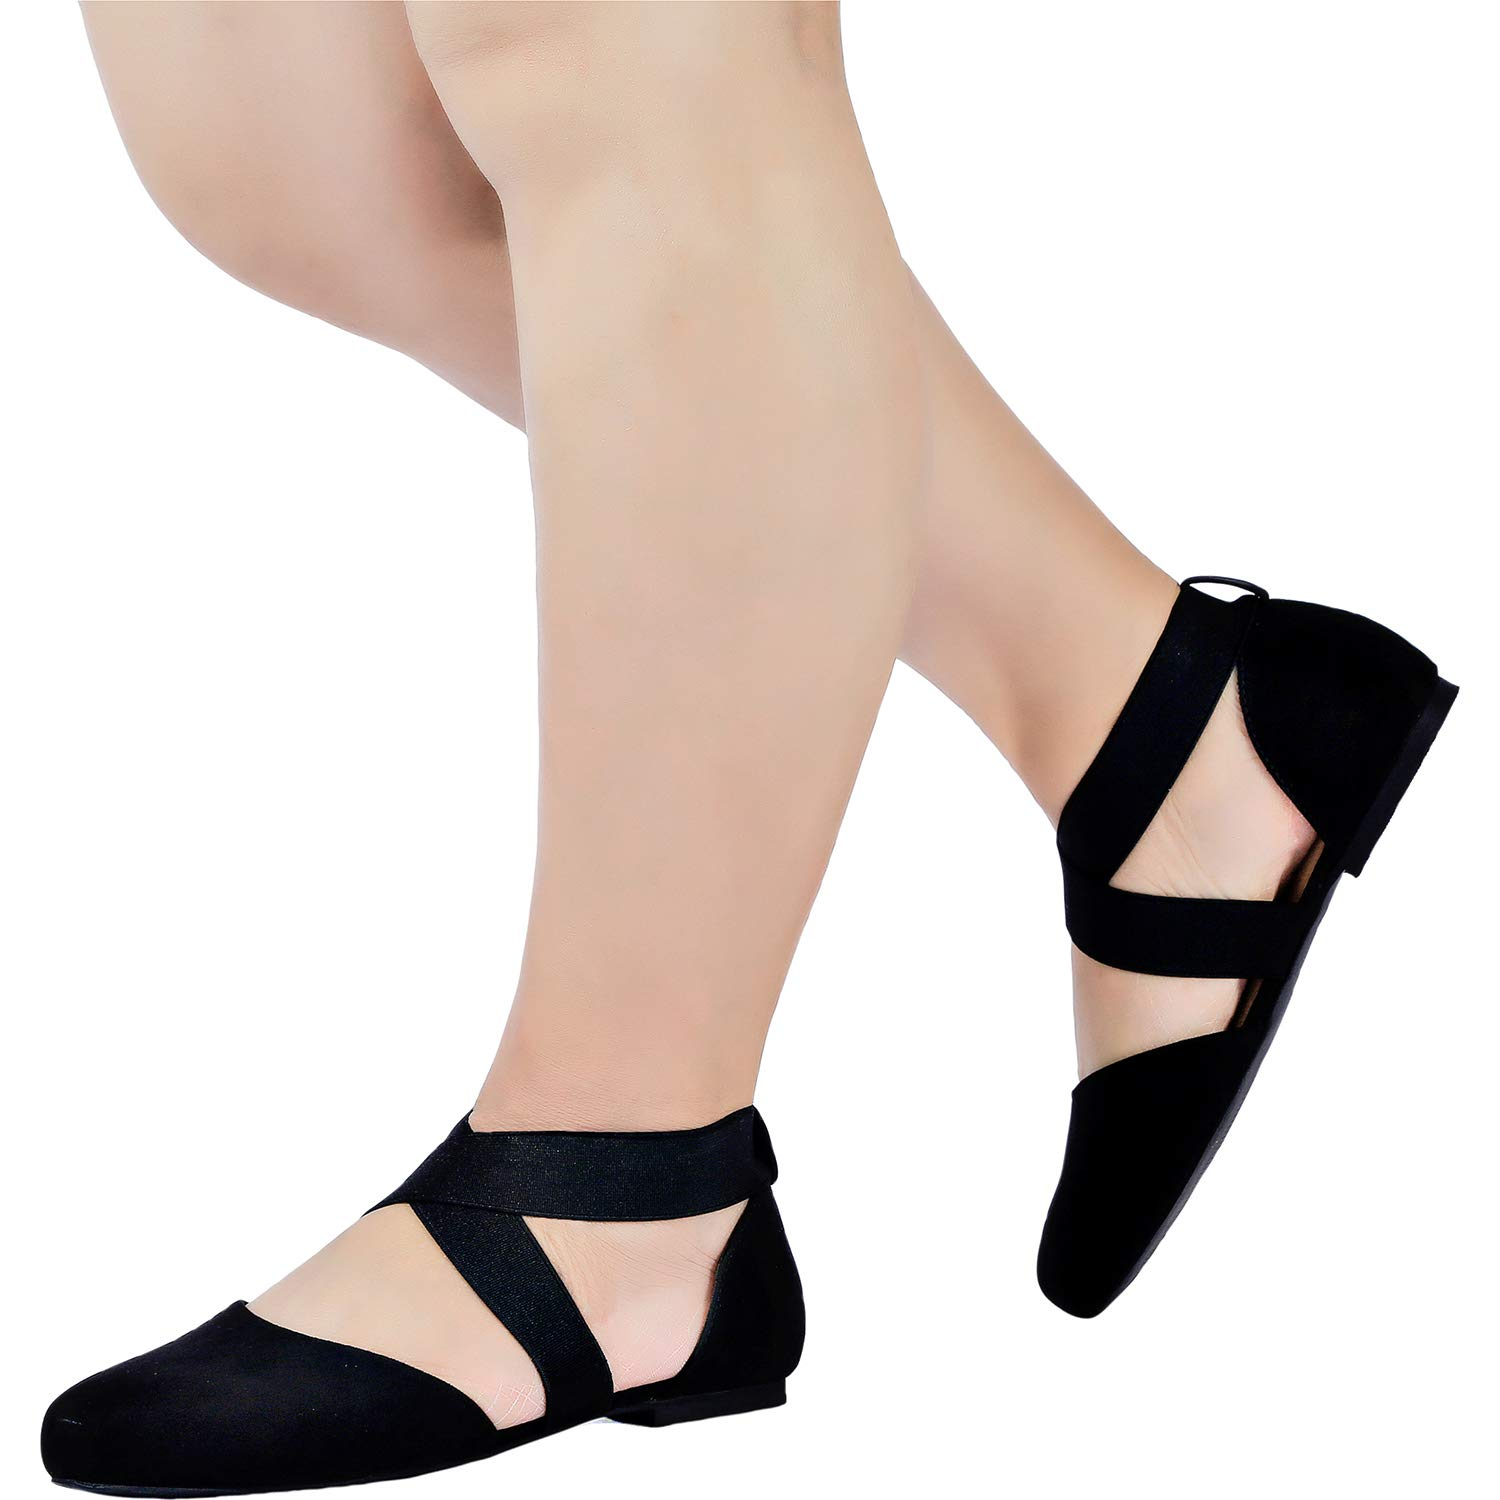 Retro Vintage Style Wide Shoes Womens Wide Width Flat Sandals - Elastic Cross Strap Pointy Toe Casual Summer Shoes. $25.99 AT vintagedancer.com